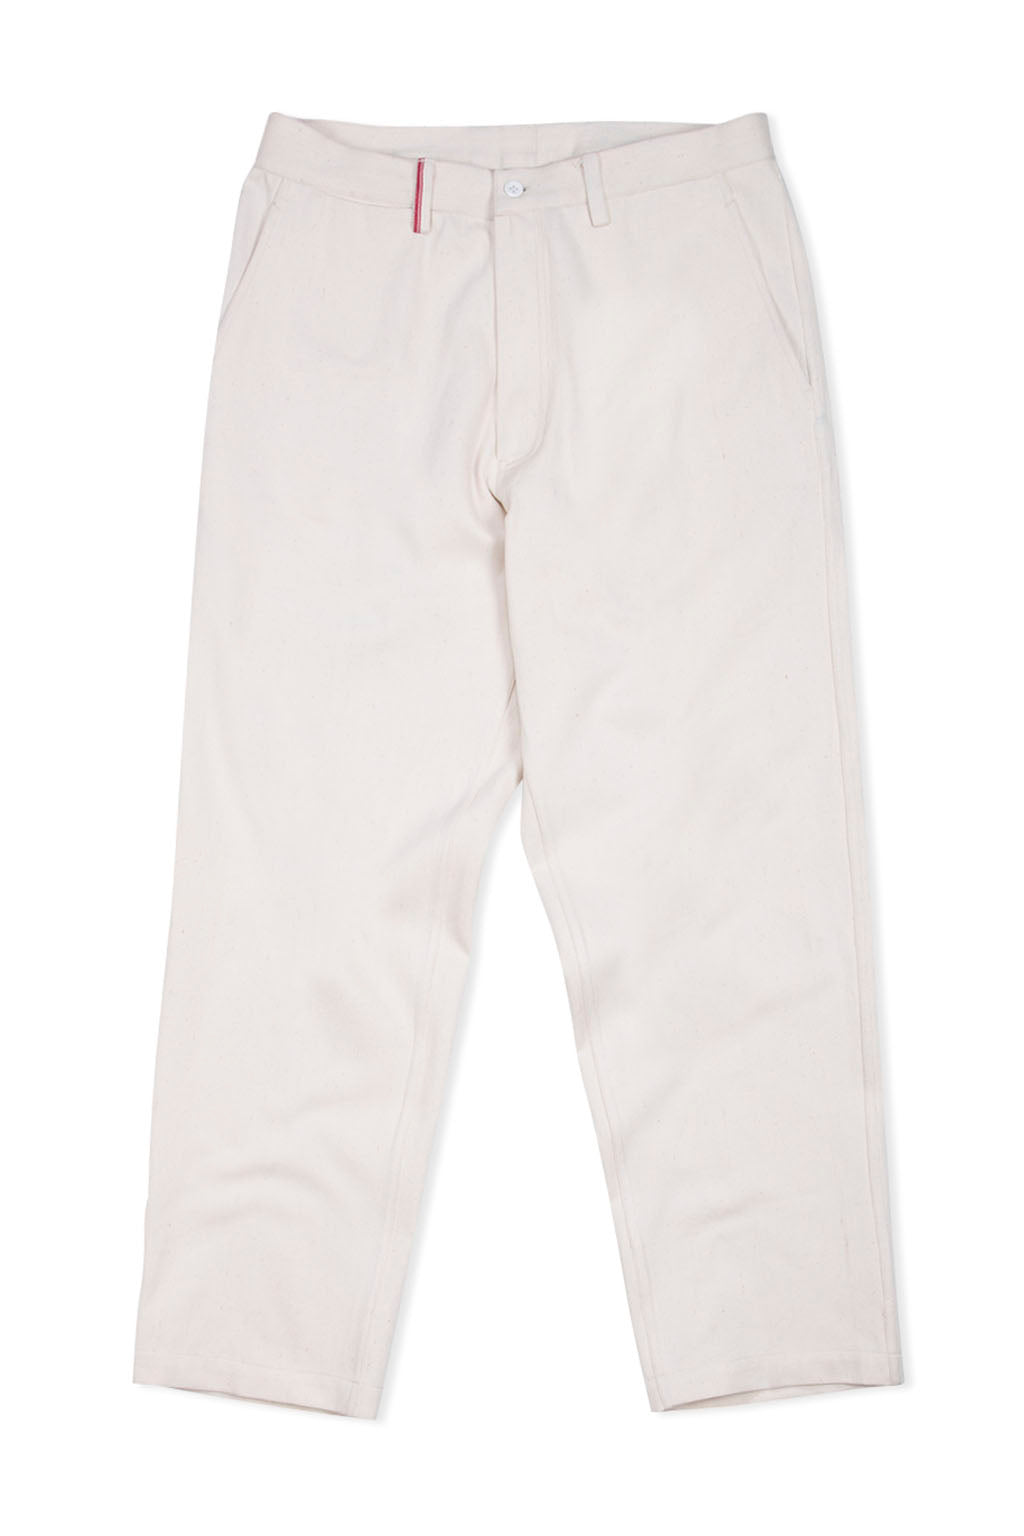 KARDO Thomas Heavy Weight Denim Trouser, Natural